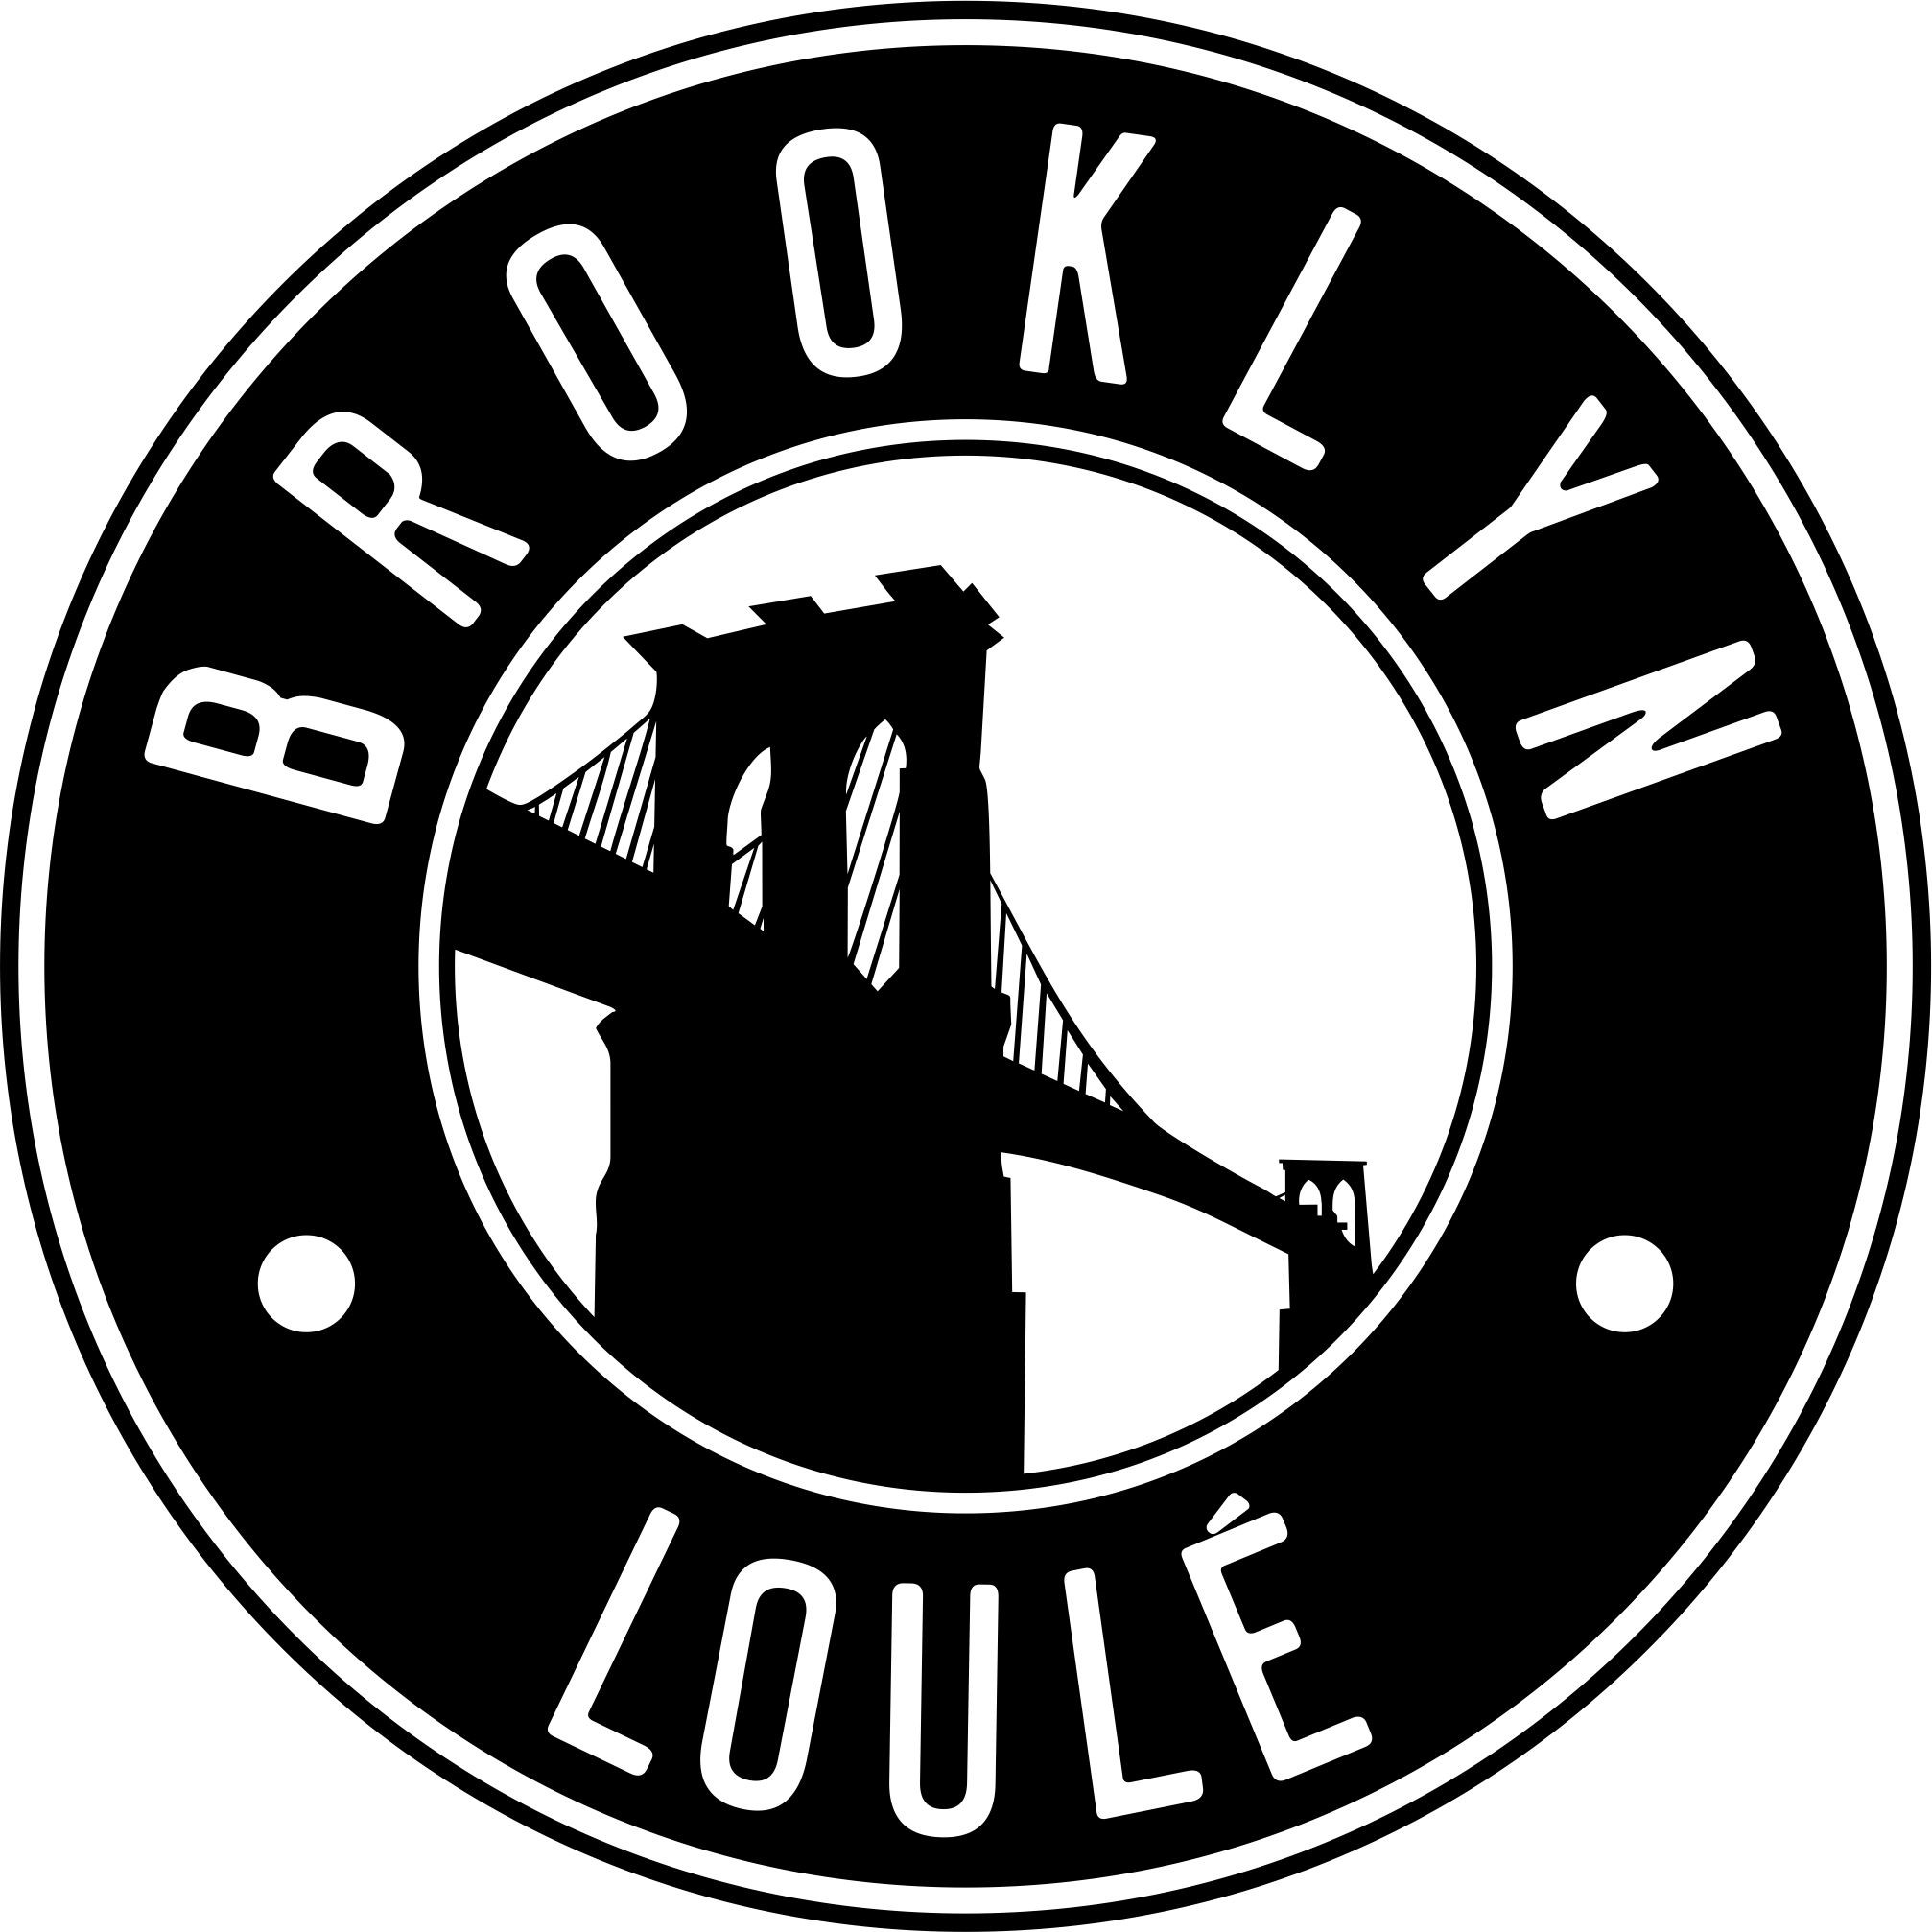 Brooklyn Loulé